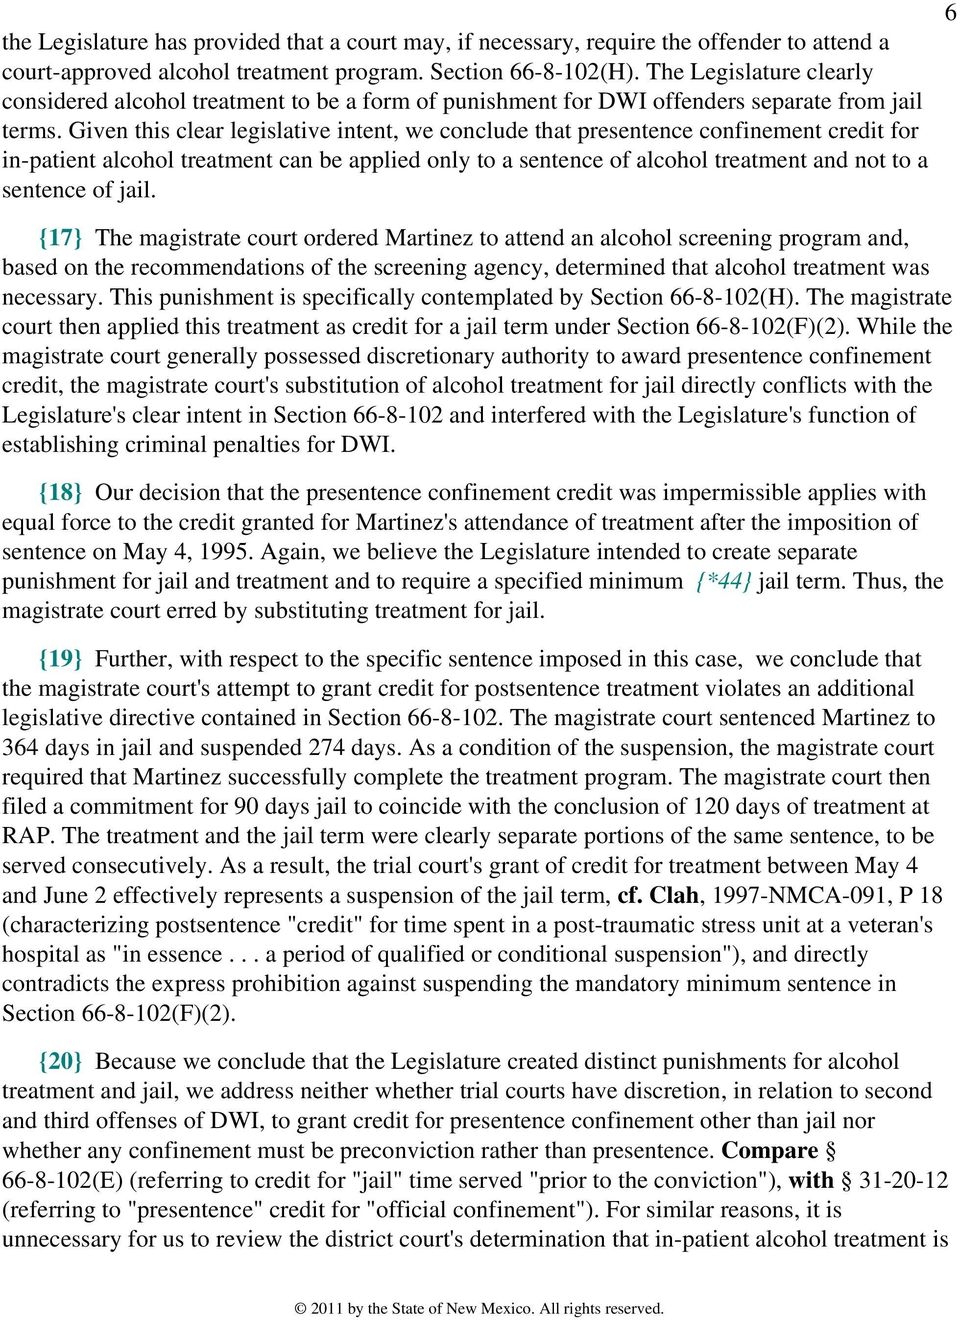 Given this clear legislative intent, we conclude that presentence confinement credit for in-patient alcohol treatment can be applied only to a sentence of alcohol treatment and not to a sentence of